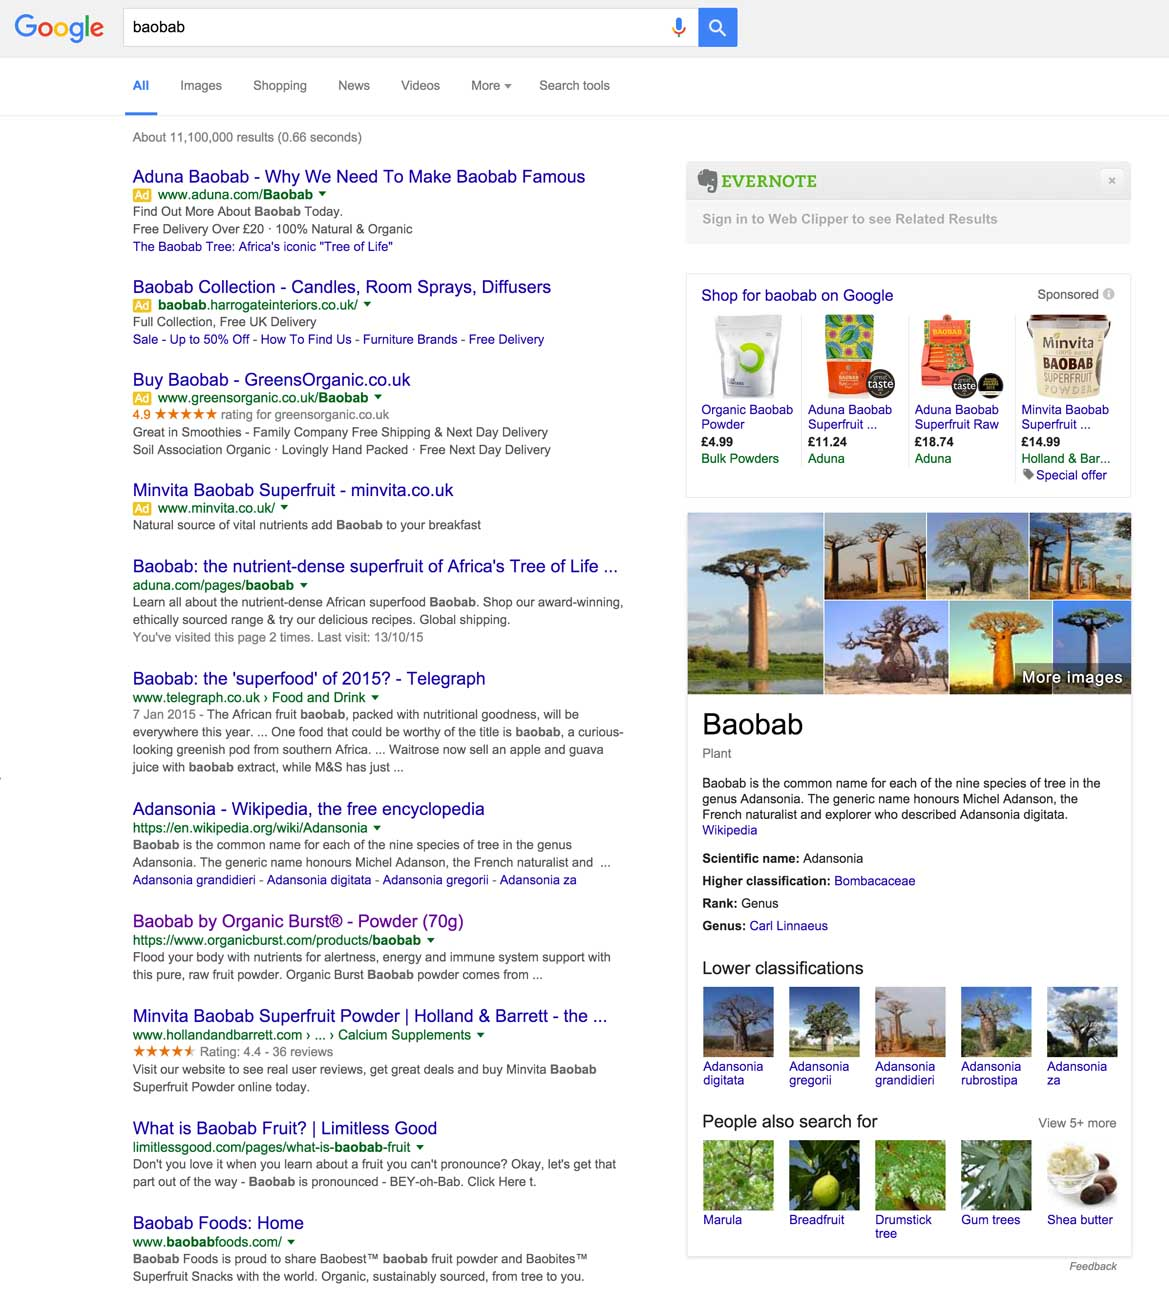 Baobab search results